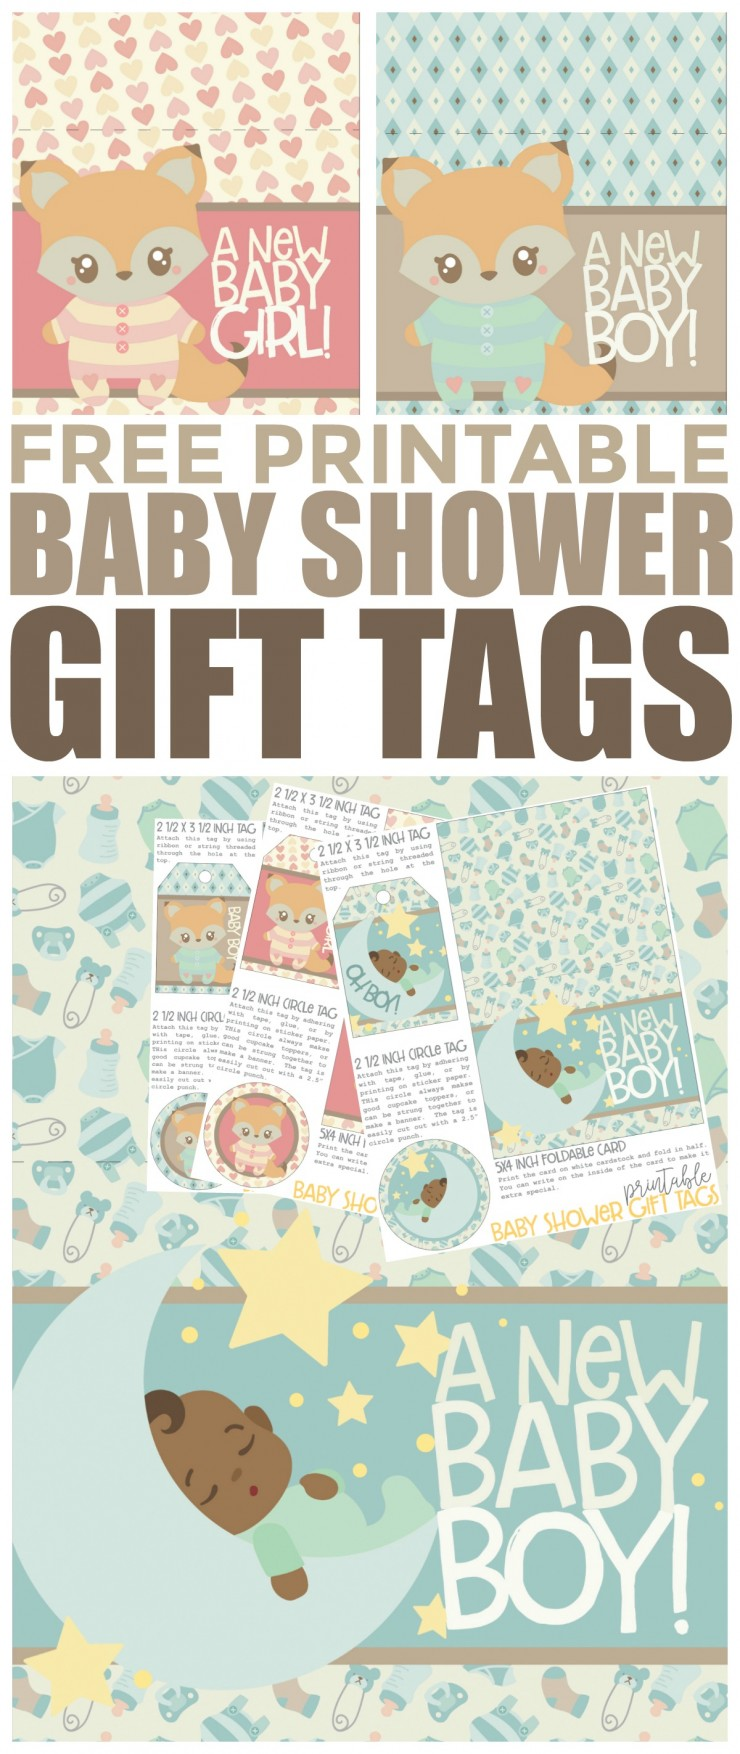 picture relating to Printable Baby Shower Gift Tags called Cost-free Printable Kid Shower Present Tags - Frugal Mother Eh!